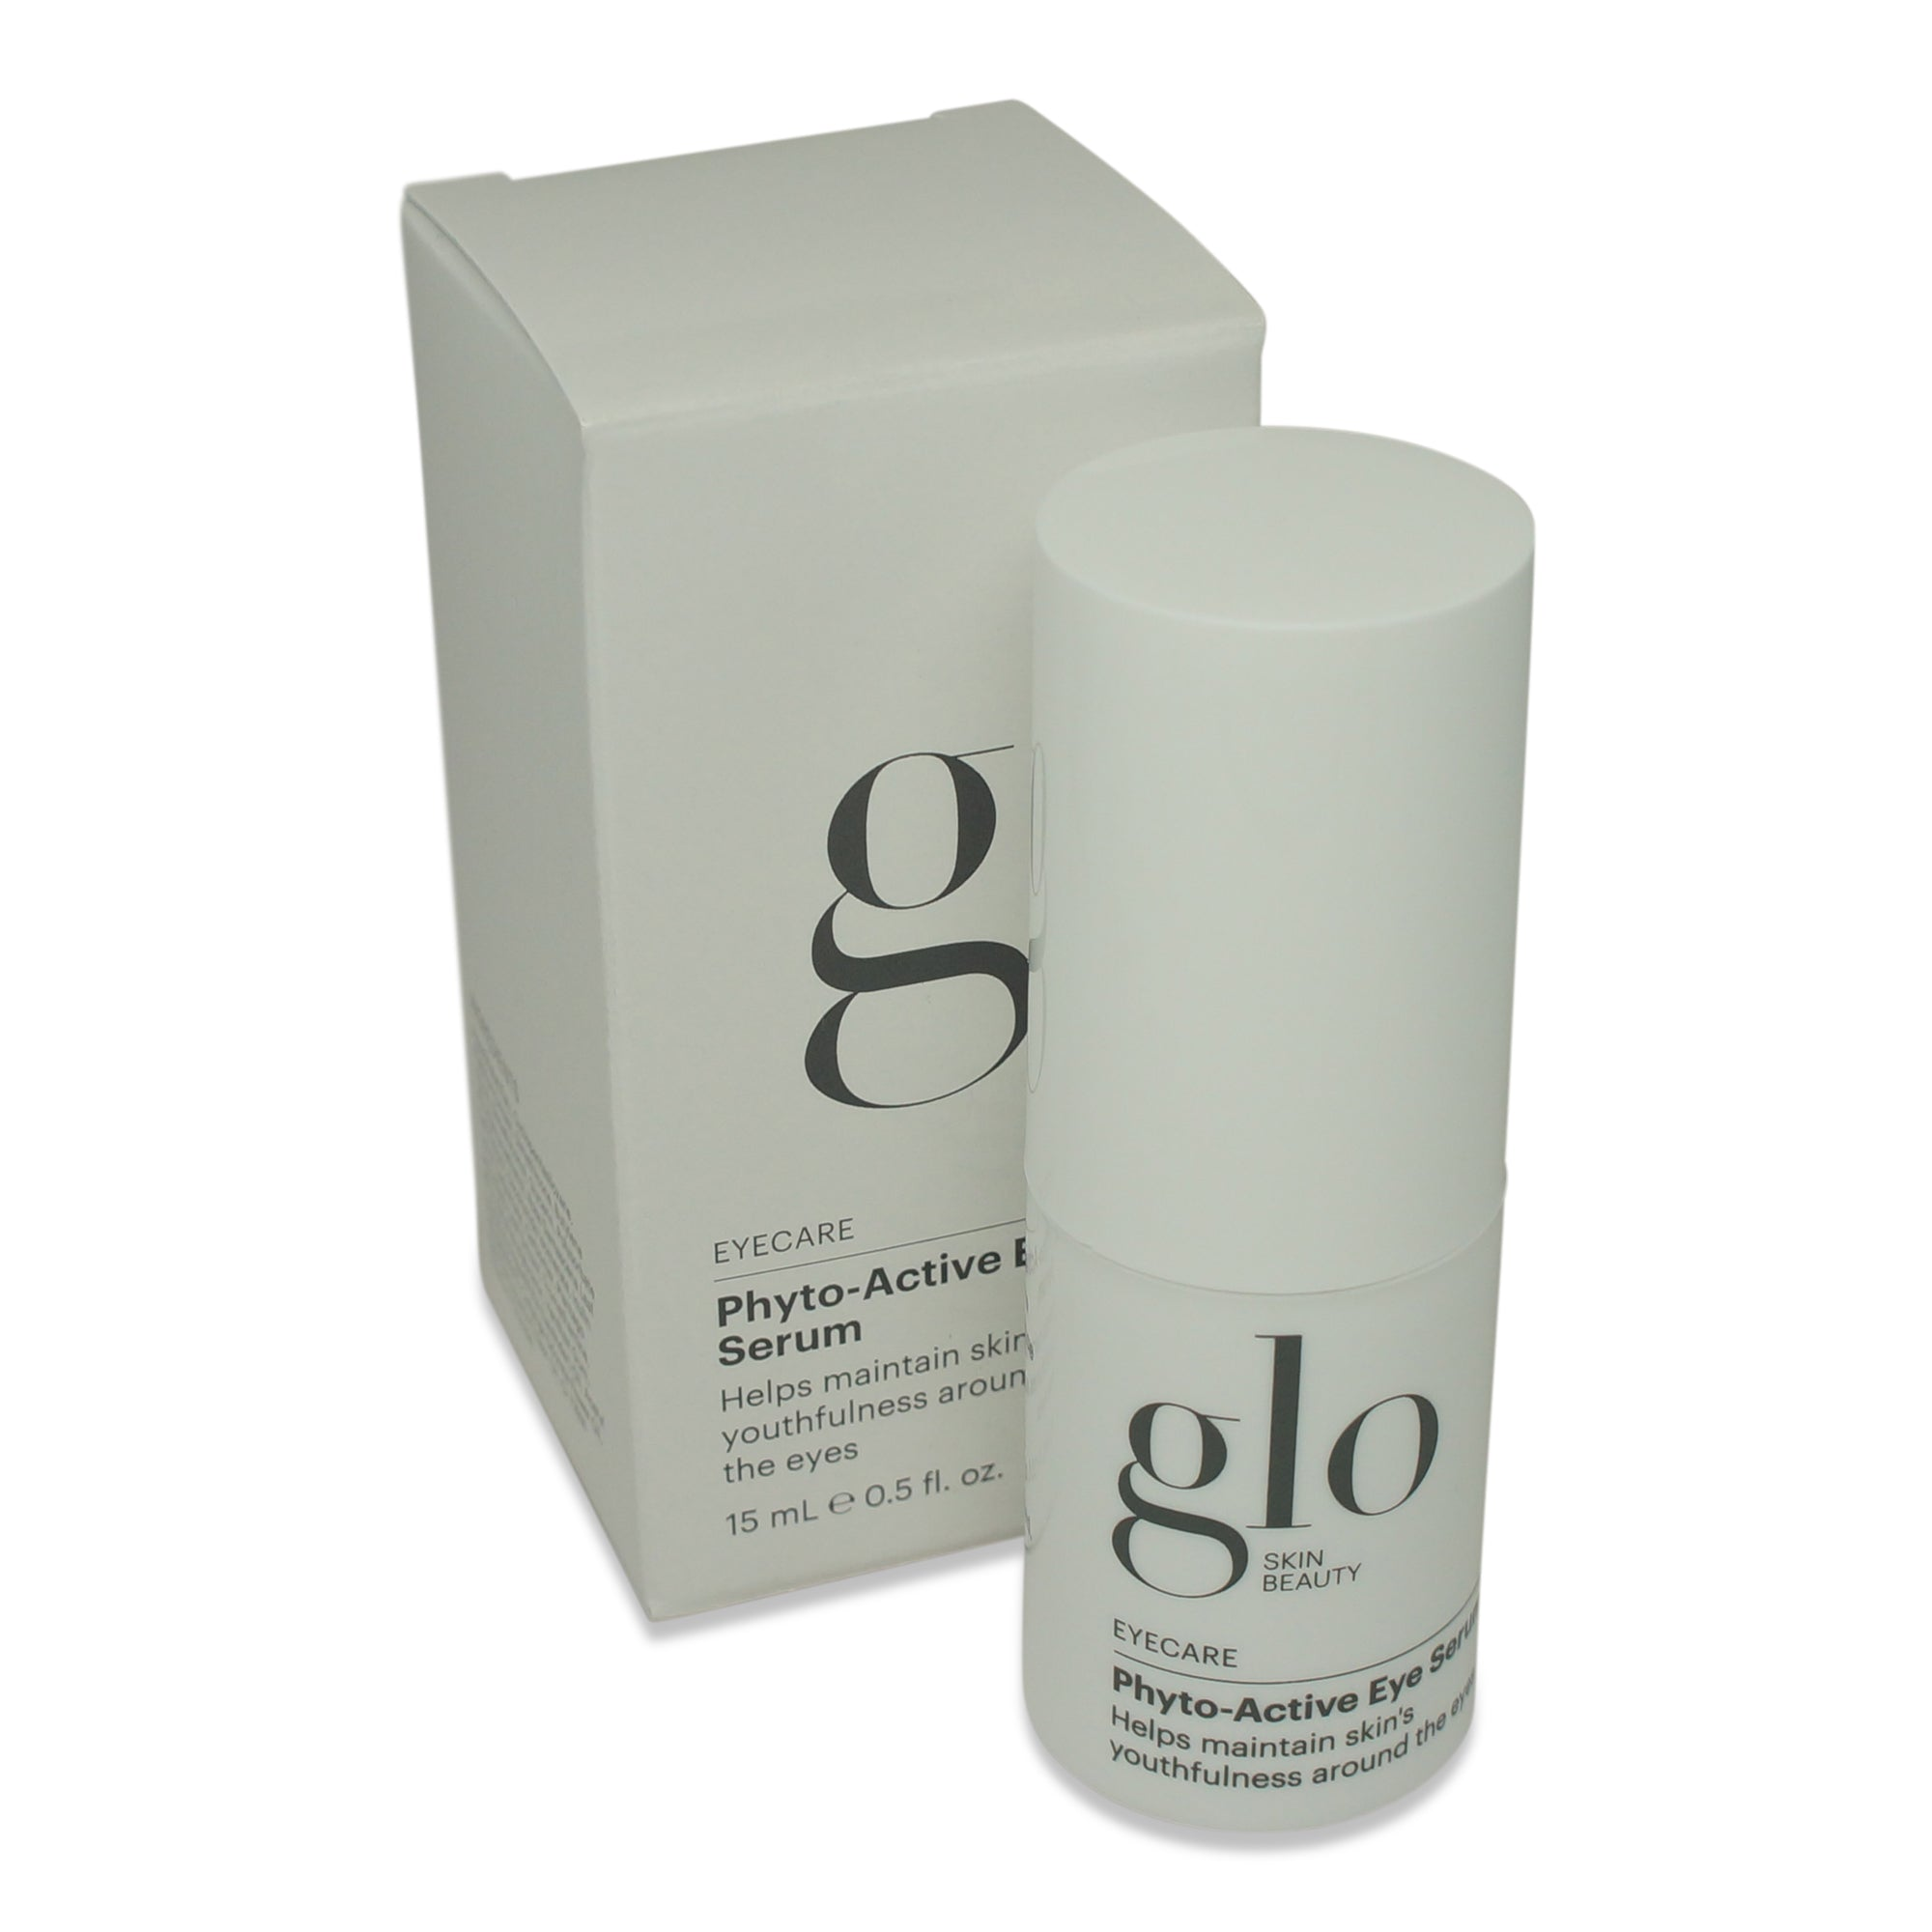 GLO SKIN ~ LIP & EYECARE ~ PHYTO-ACTIVE EYE SERUM ~ .5 oz